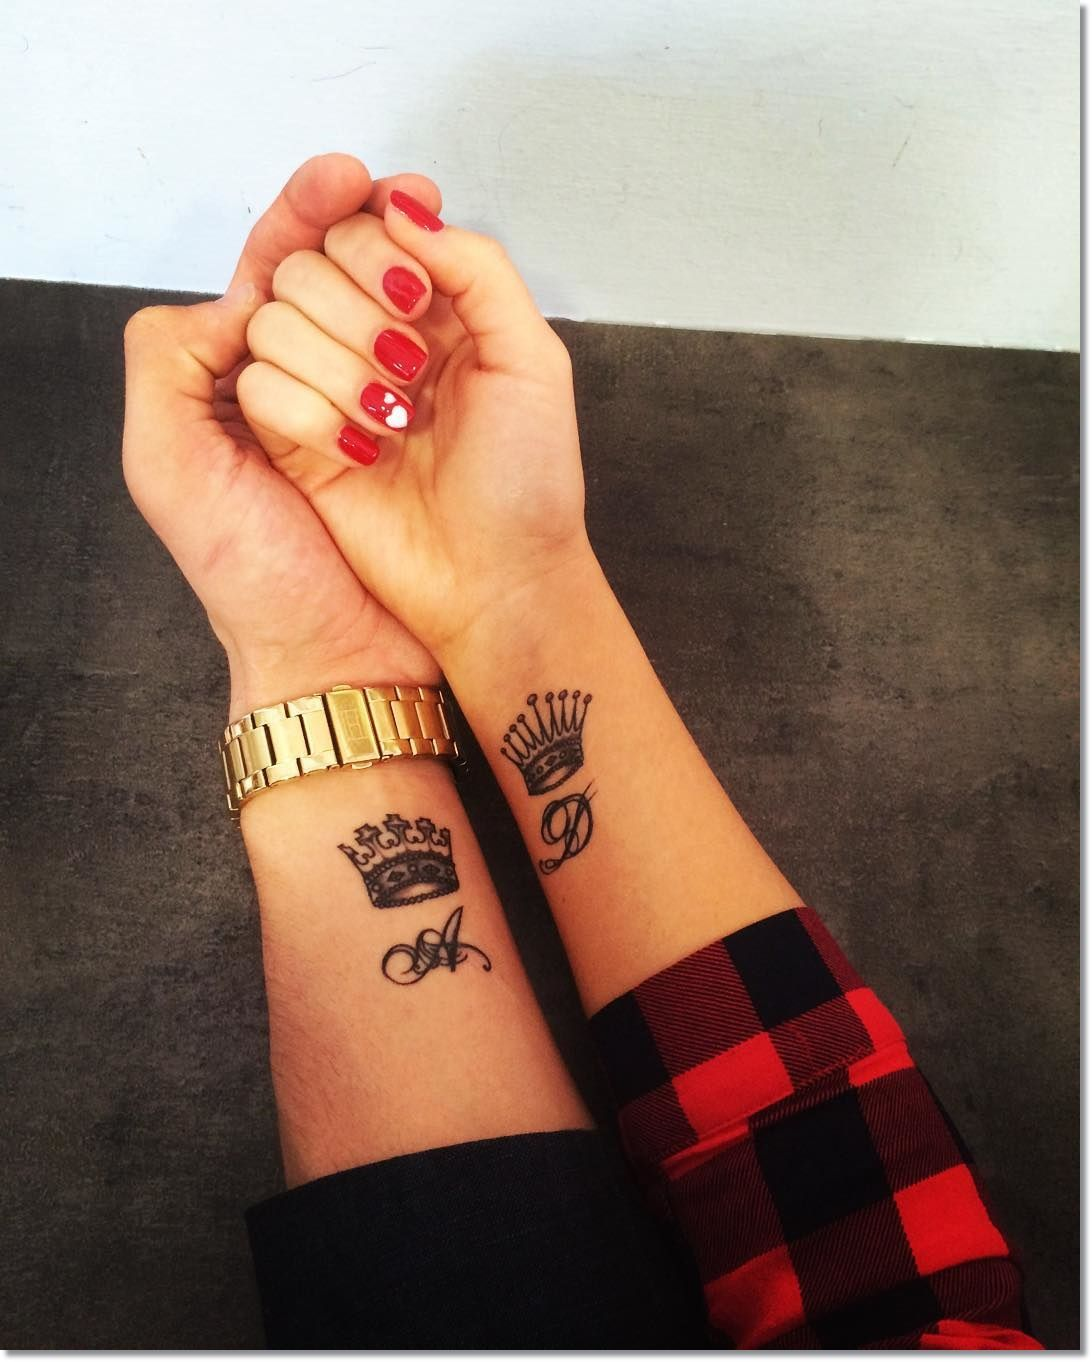 ebe00ebb57a5a 83 Small Crown Tattoos Ideas You Cannot Miss! | Tattoos | Queen ...